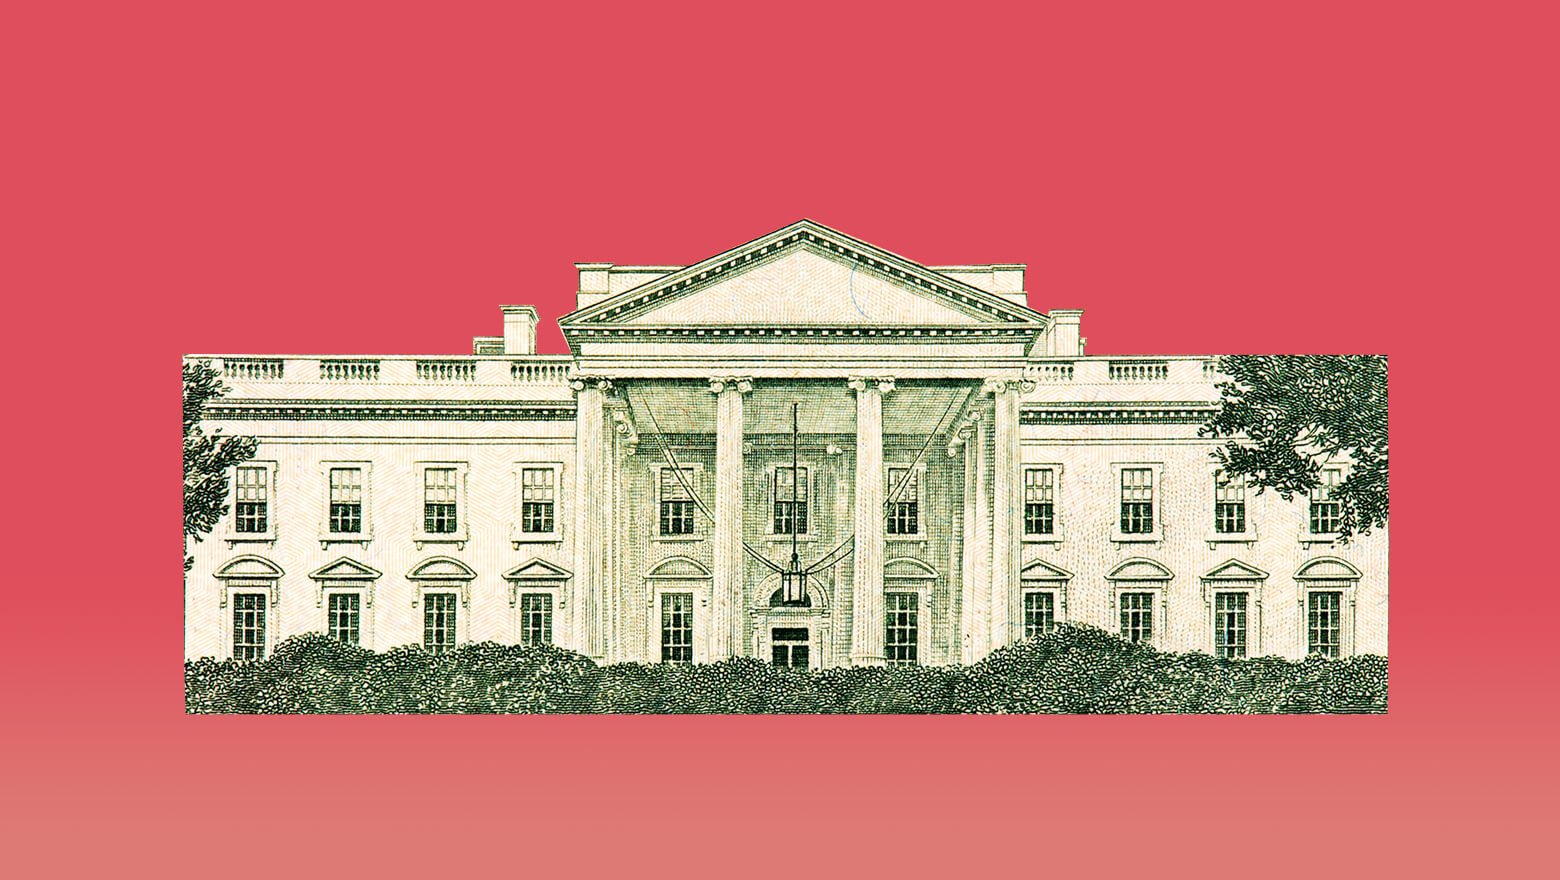 White House on red background